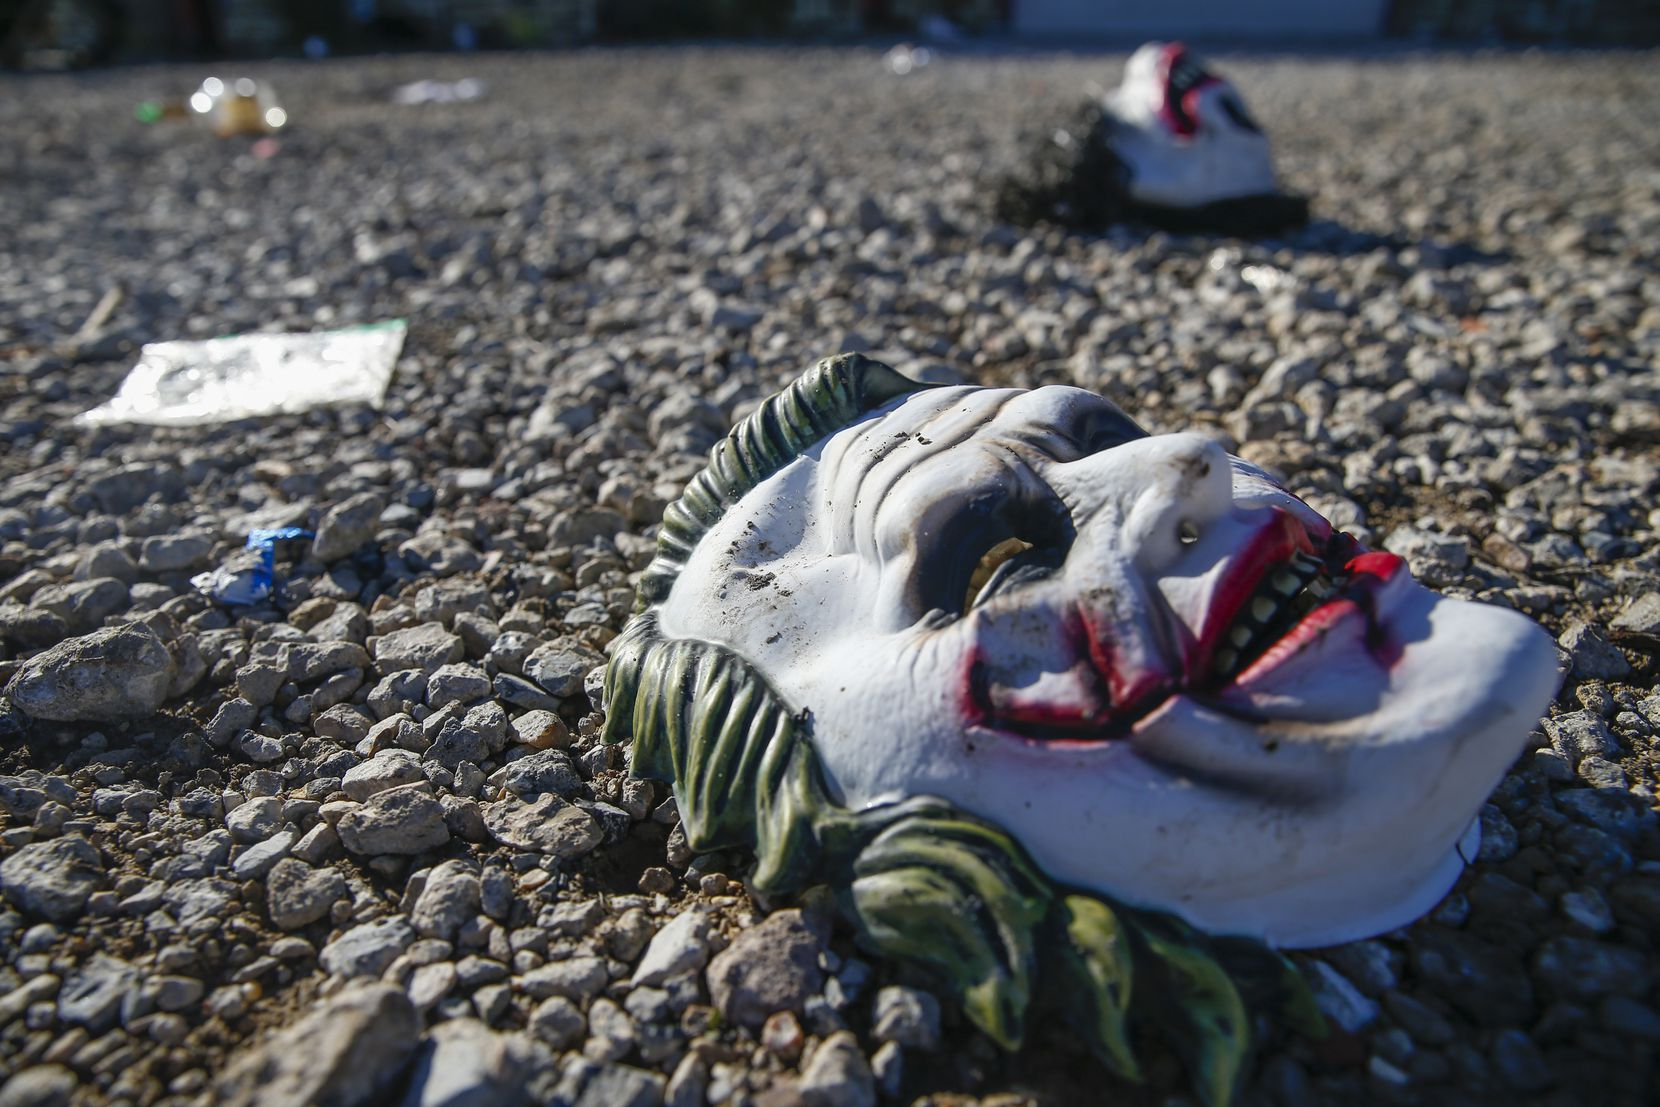 Halloween masks litter the ground among signs of chaos at the scene where a mass shooting occurred the night before at The Party Venue.